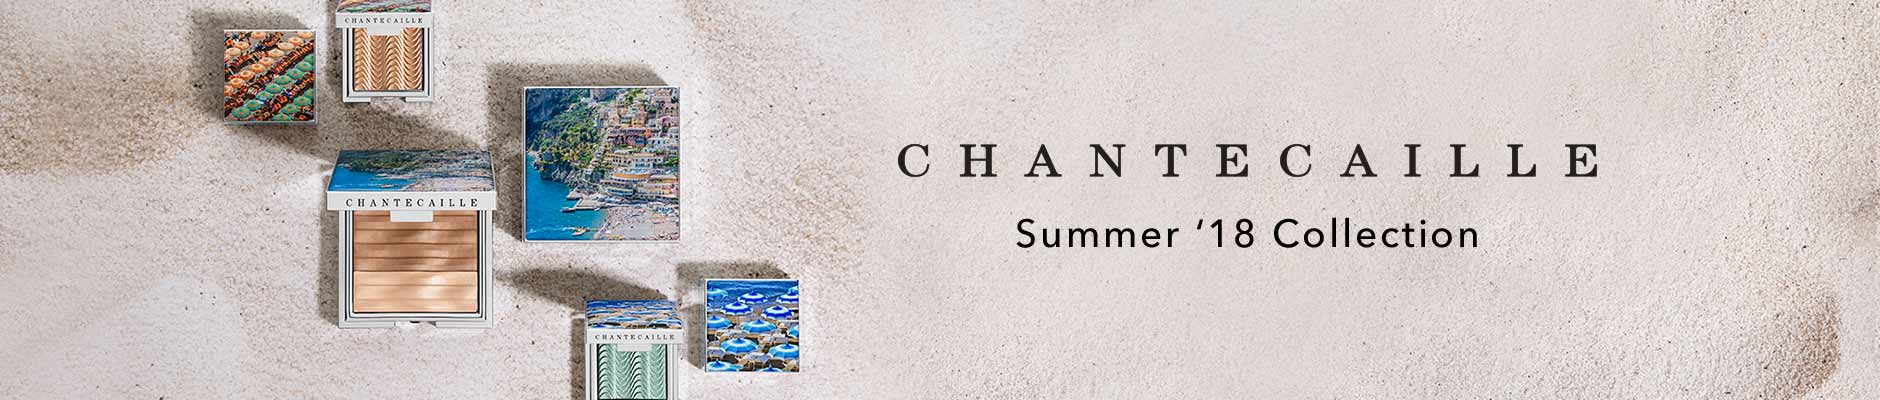 Chantecaille - Summer '18 Collection